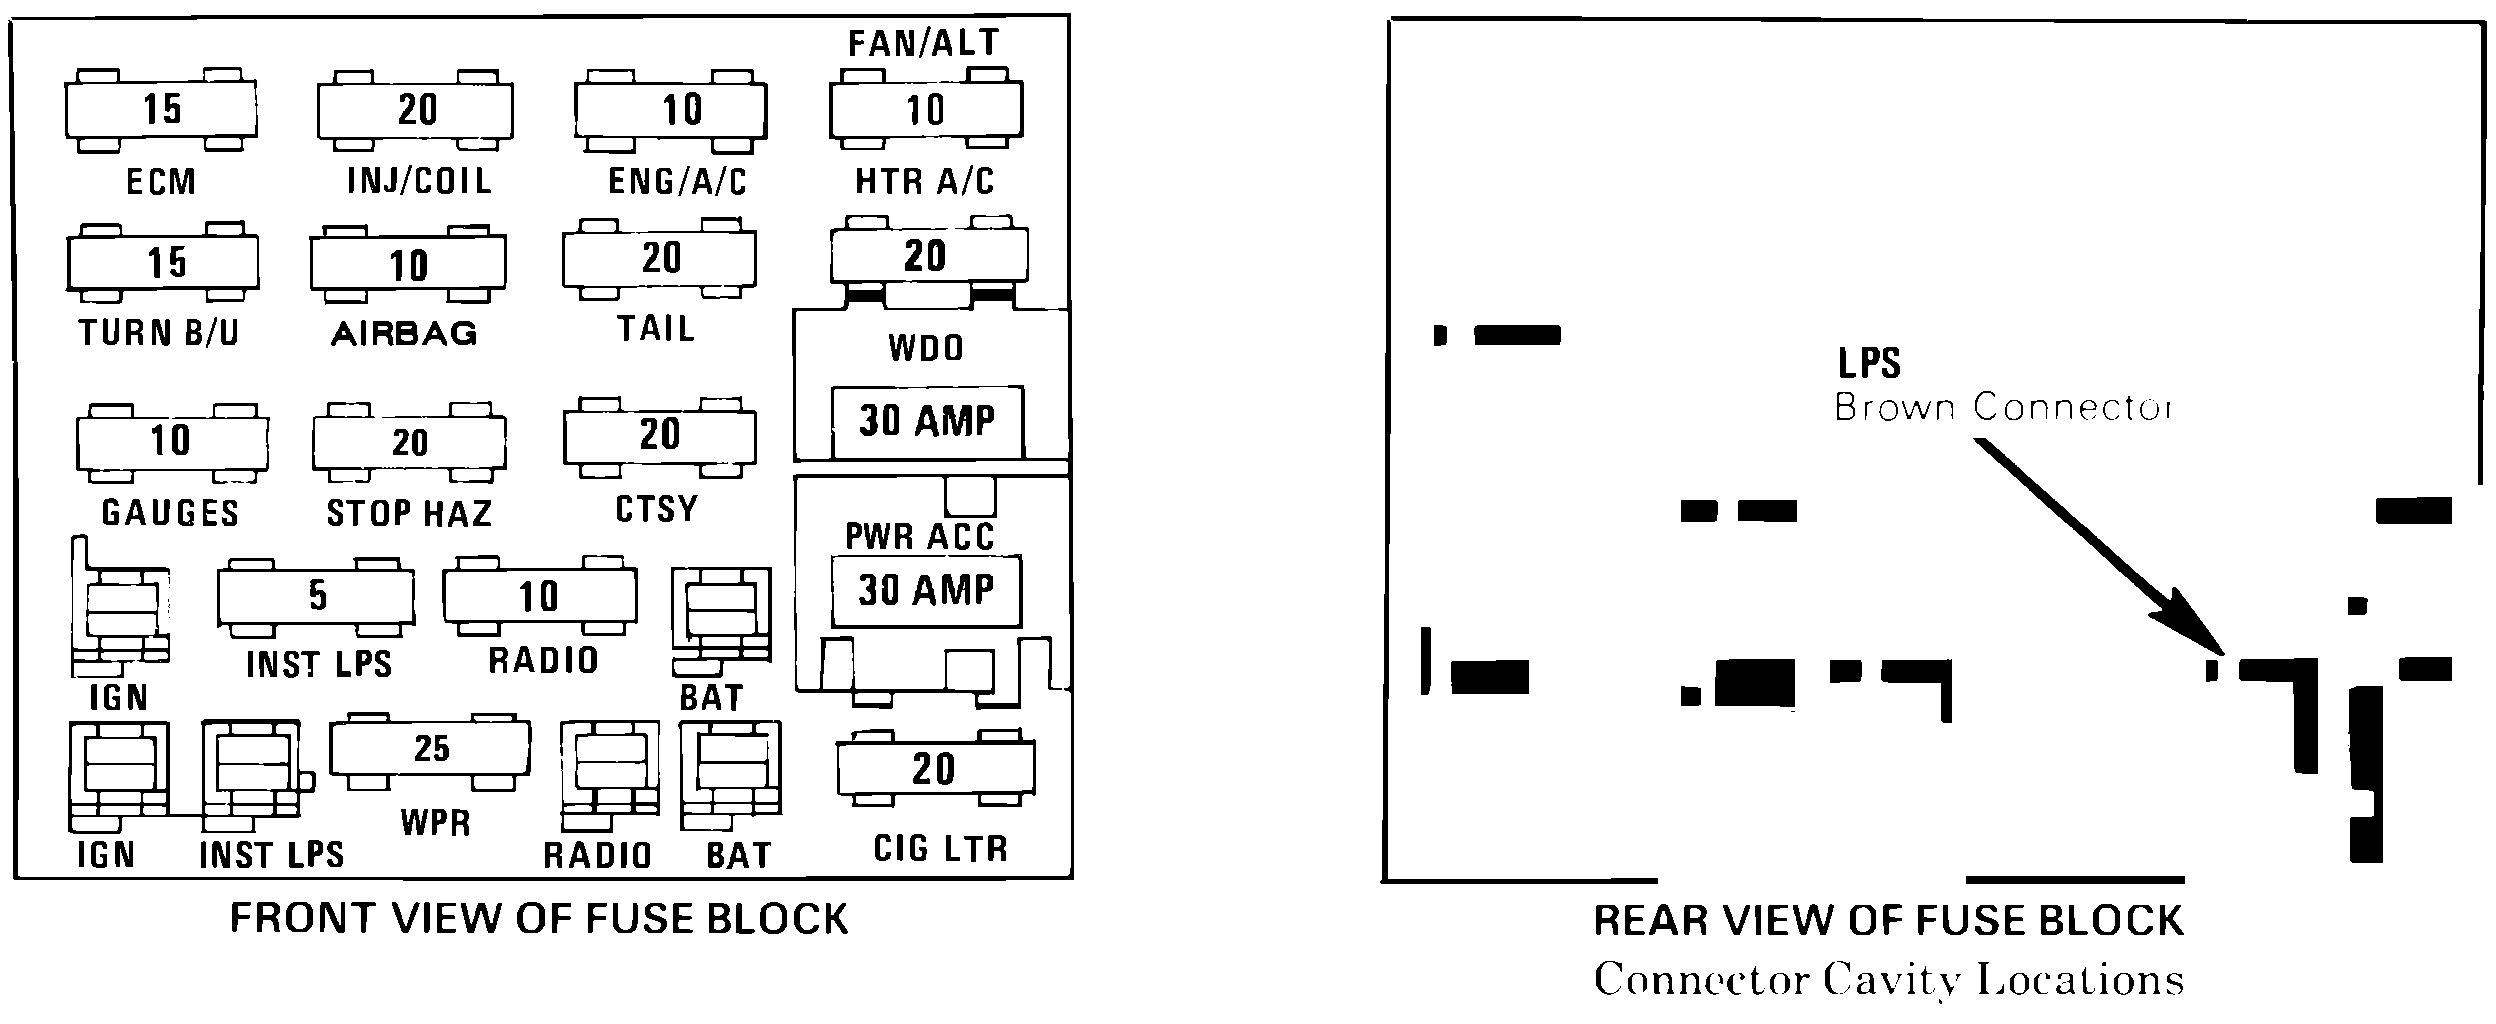 Ignition Fuse and Relay: Where Is the Ignition Fuse and